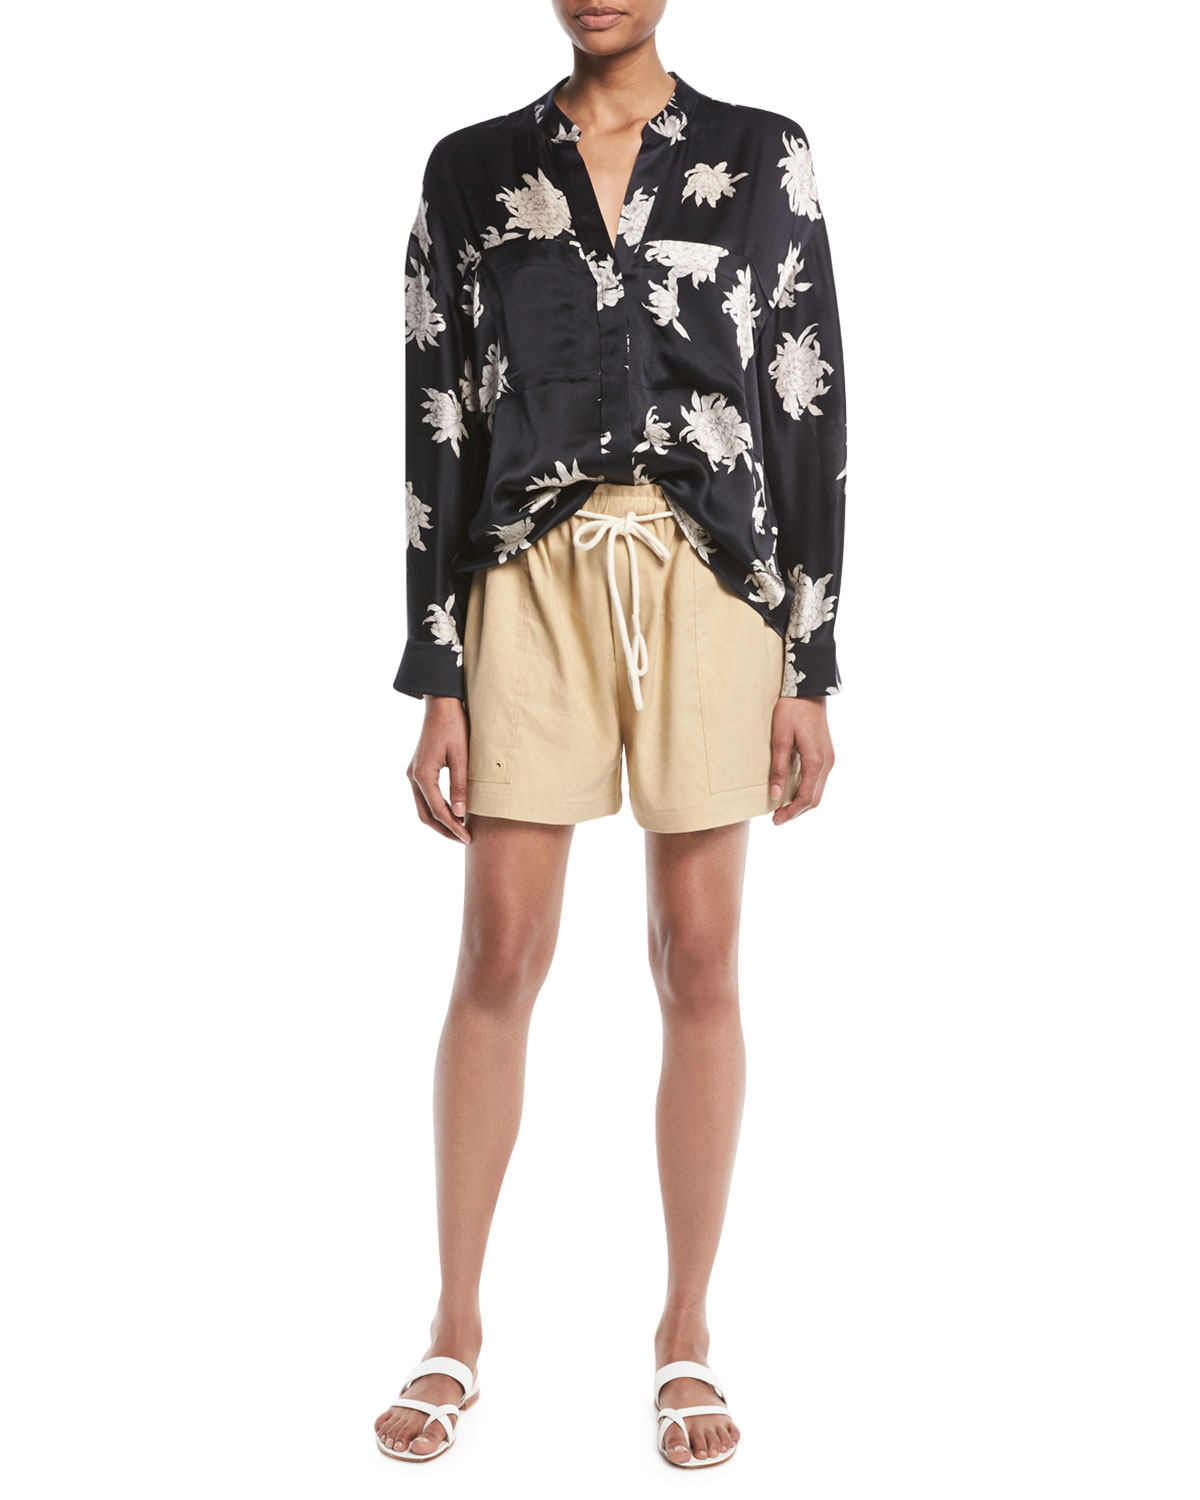 Silk Chrysanthemum Floral Long-Sleeve Pocket Blouse Vince Visit Sale Online Buy Cheap For Nice Discount New Arrival Sale Collections Discount Authentic lRwO45